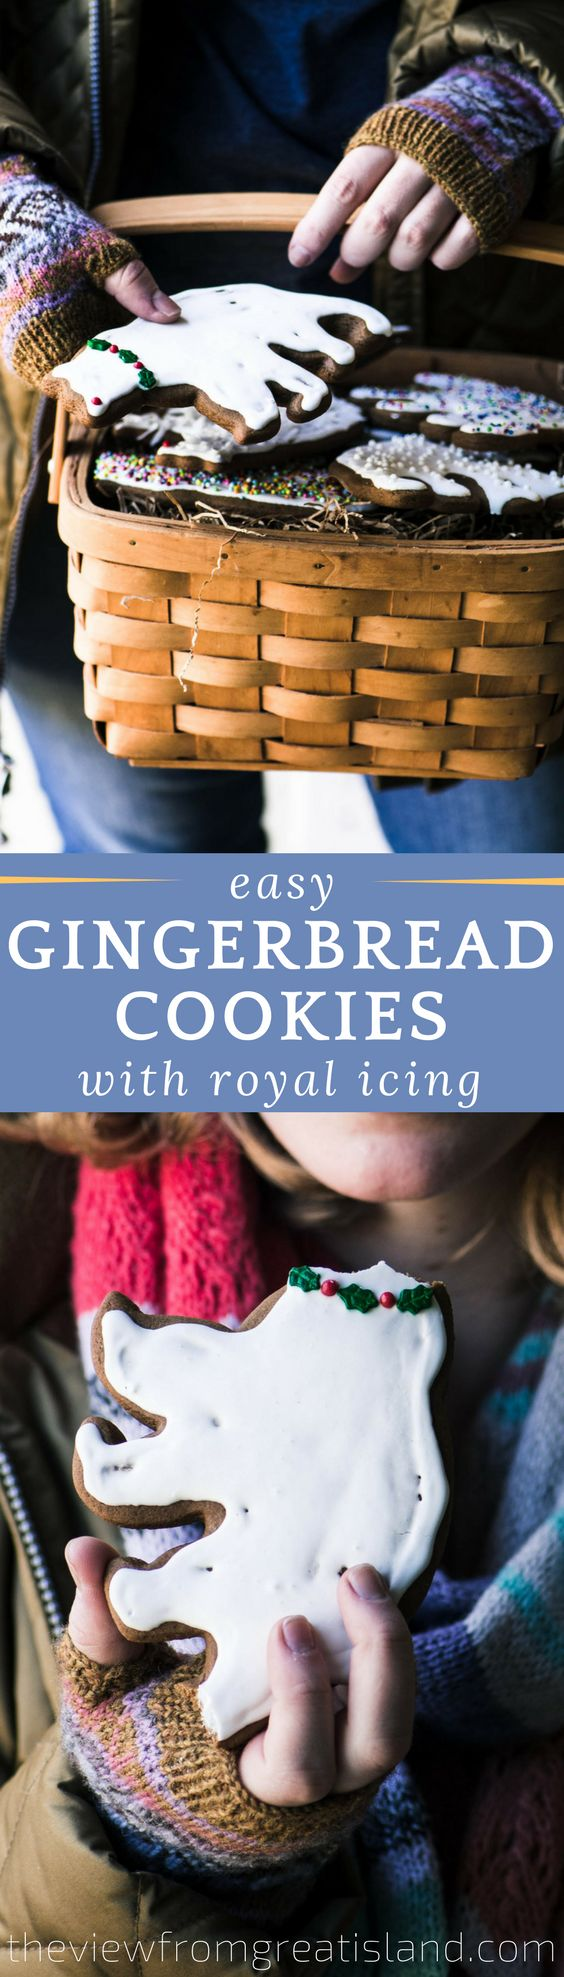 Easy Gingerbread Cookies with Royal Icing ~ it's that time of year and nothing gets me in the mood quicker than baking up a batch of gingerbread cookies!